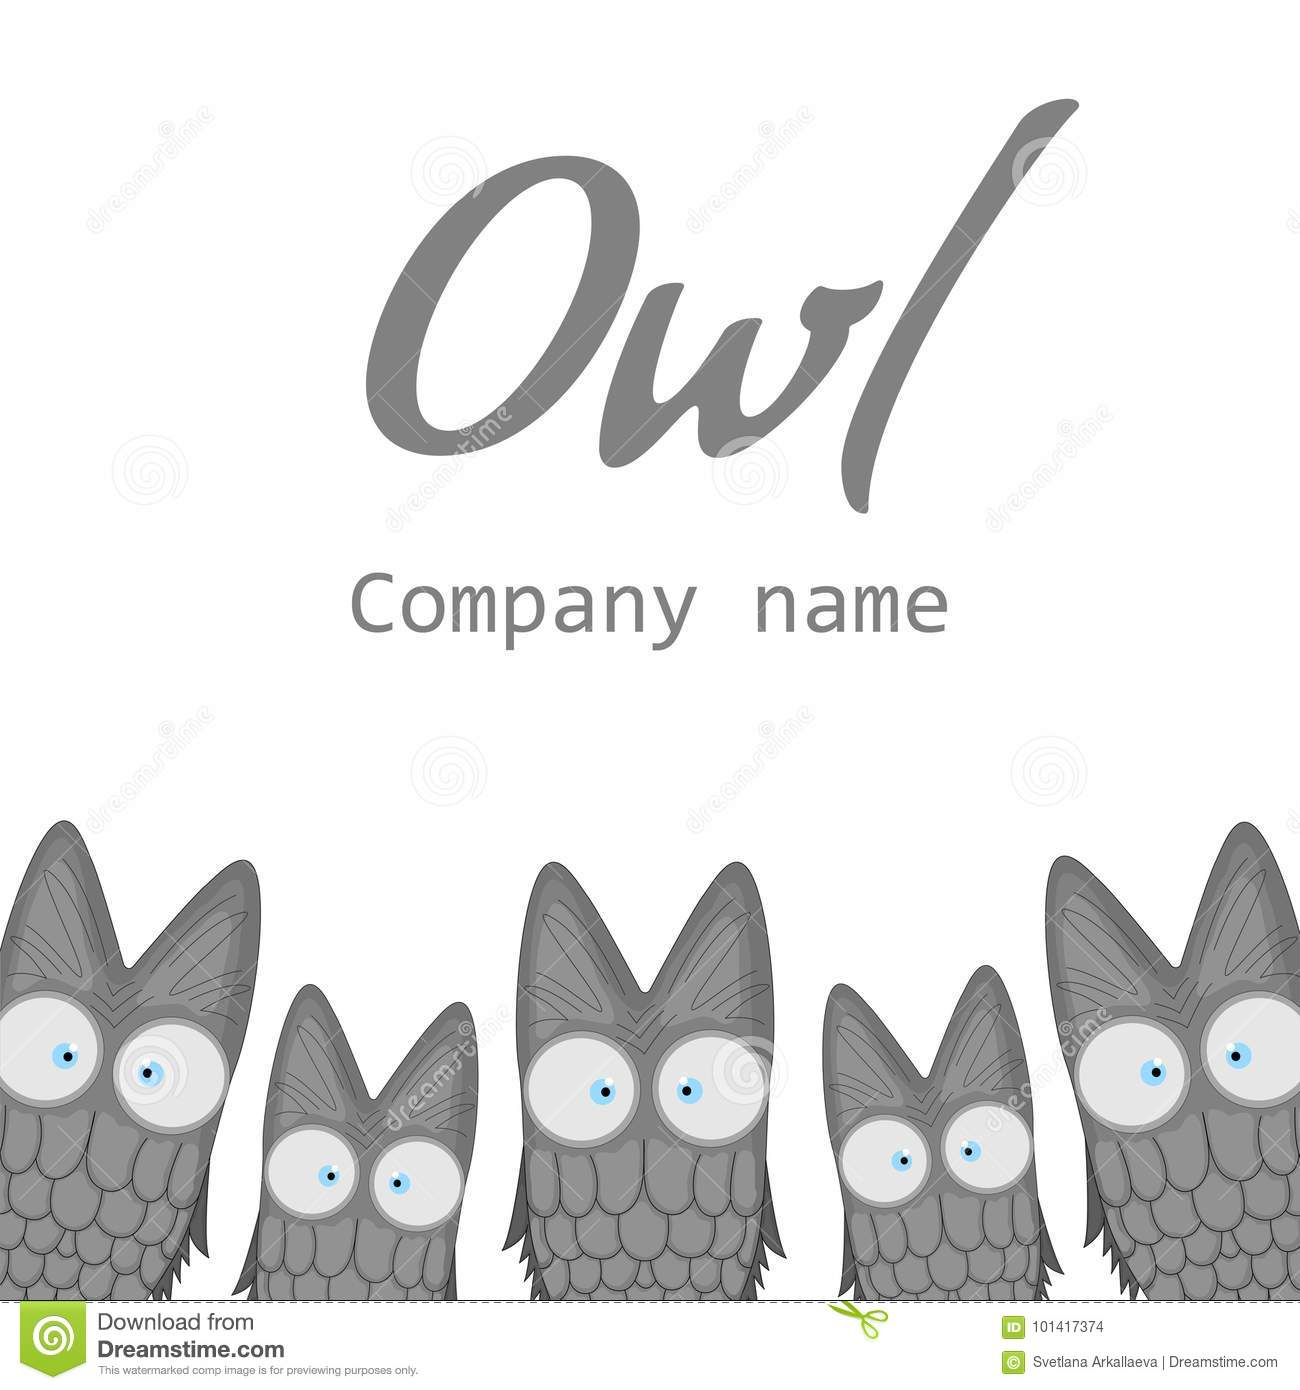 free templates for flyers owl - Dolap.magnetband.co